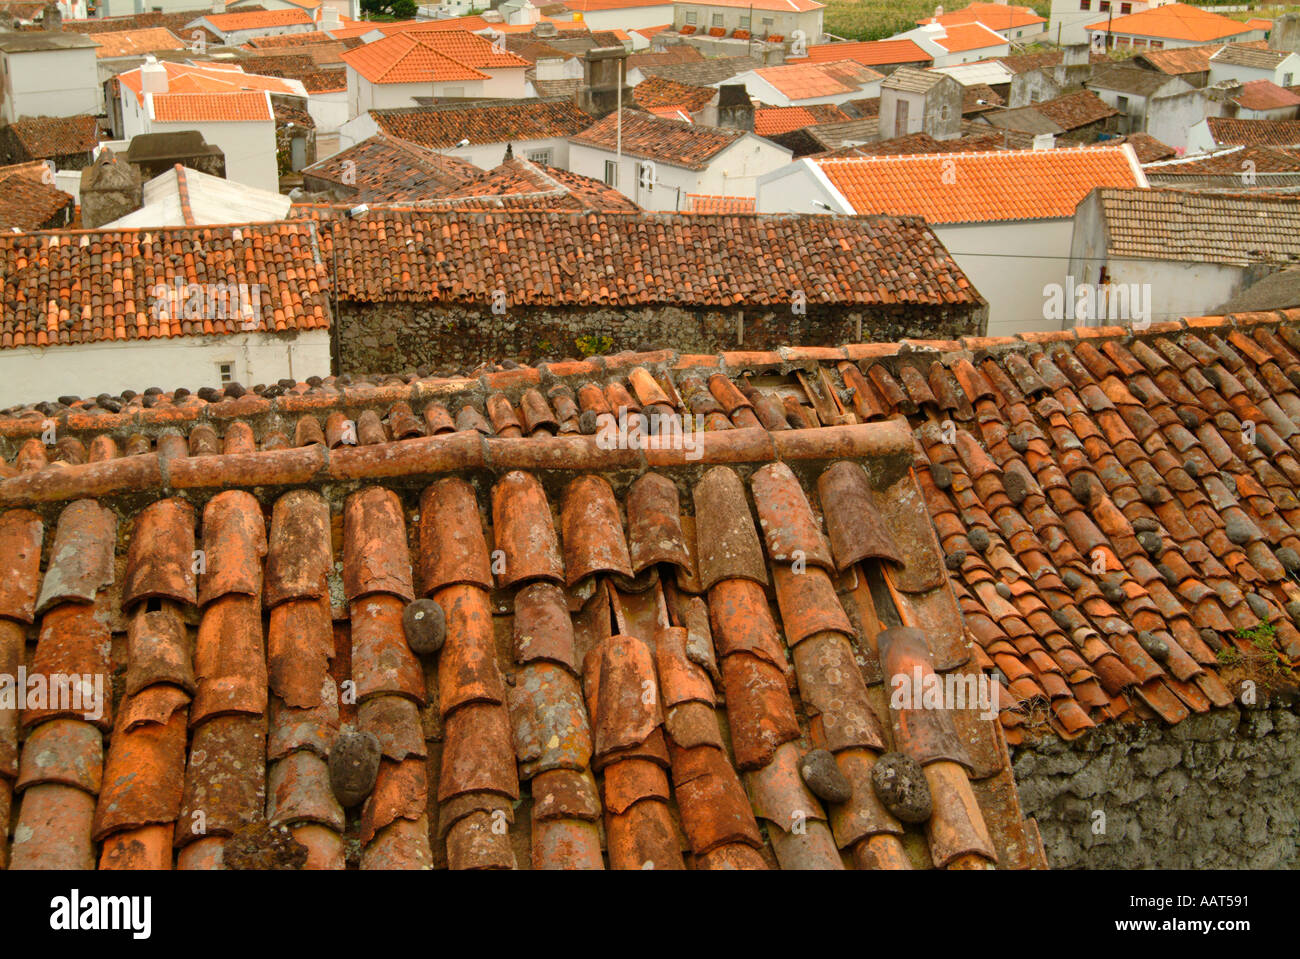 Spanish Tile Countertops Quaint Houses With Red Roofs Stock Photos And Quaint Houses